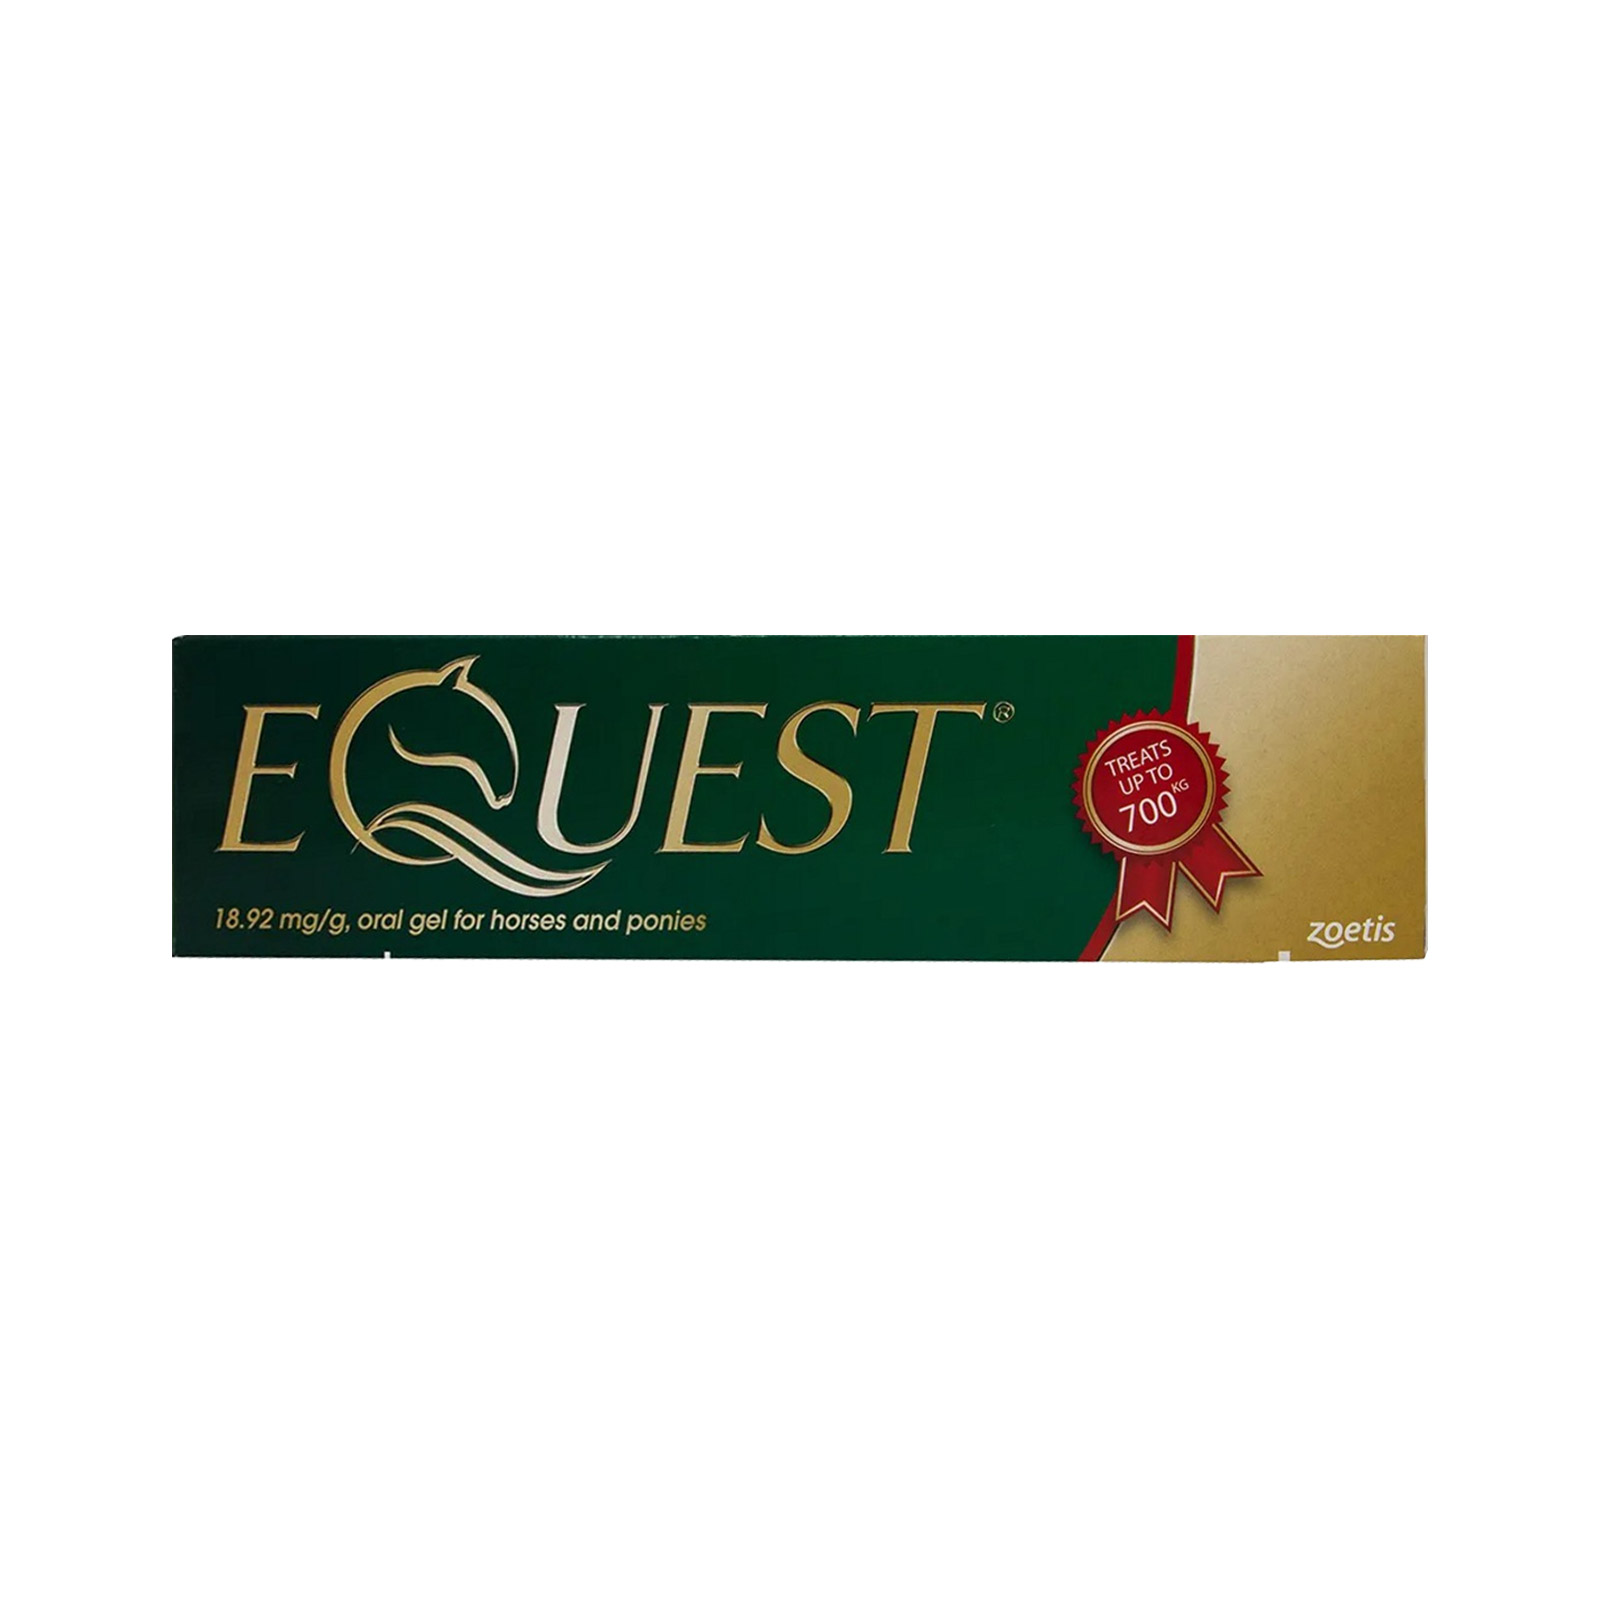 Equest-Gel-Horse-Wormer-12.2gm.jpg